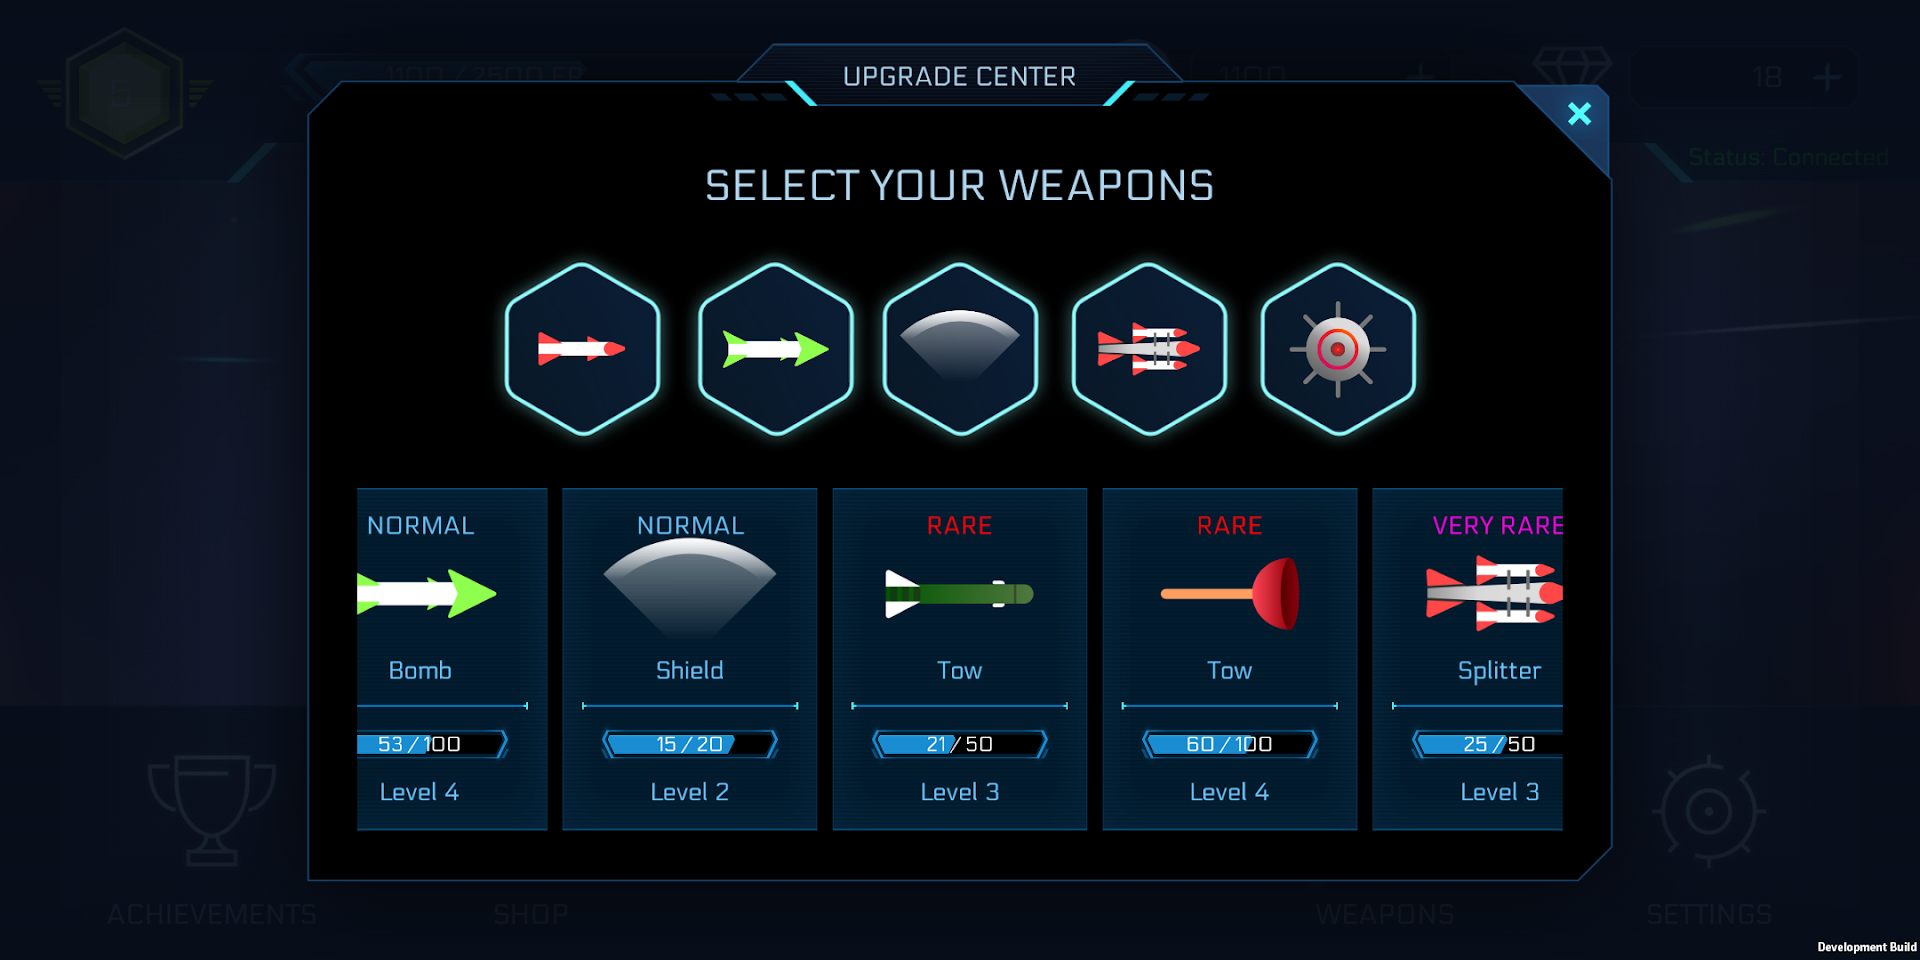 Choose your weapon setup and upgrade your weapons